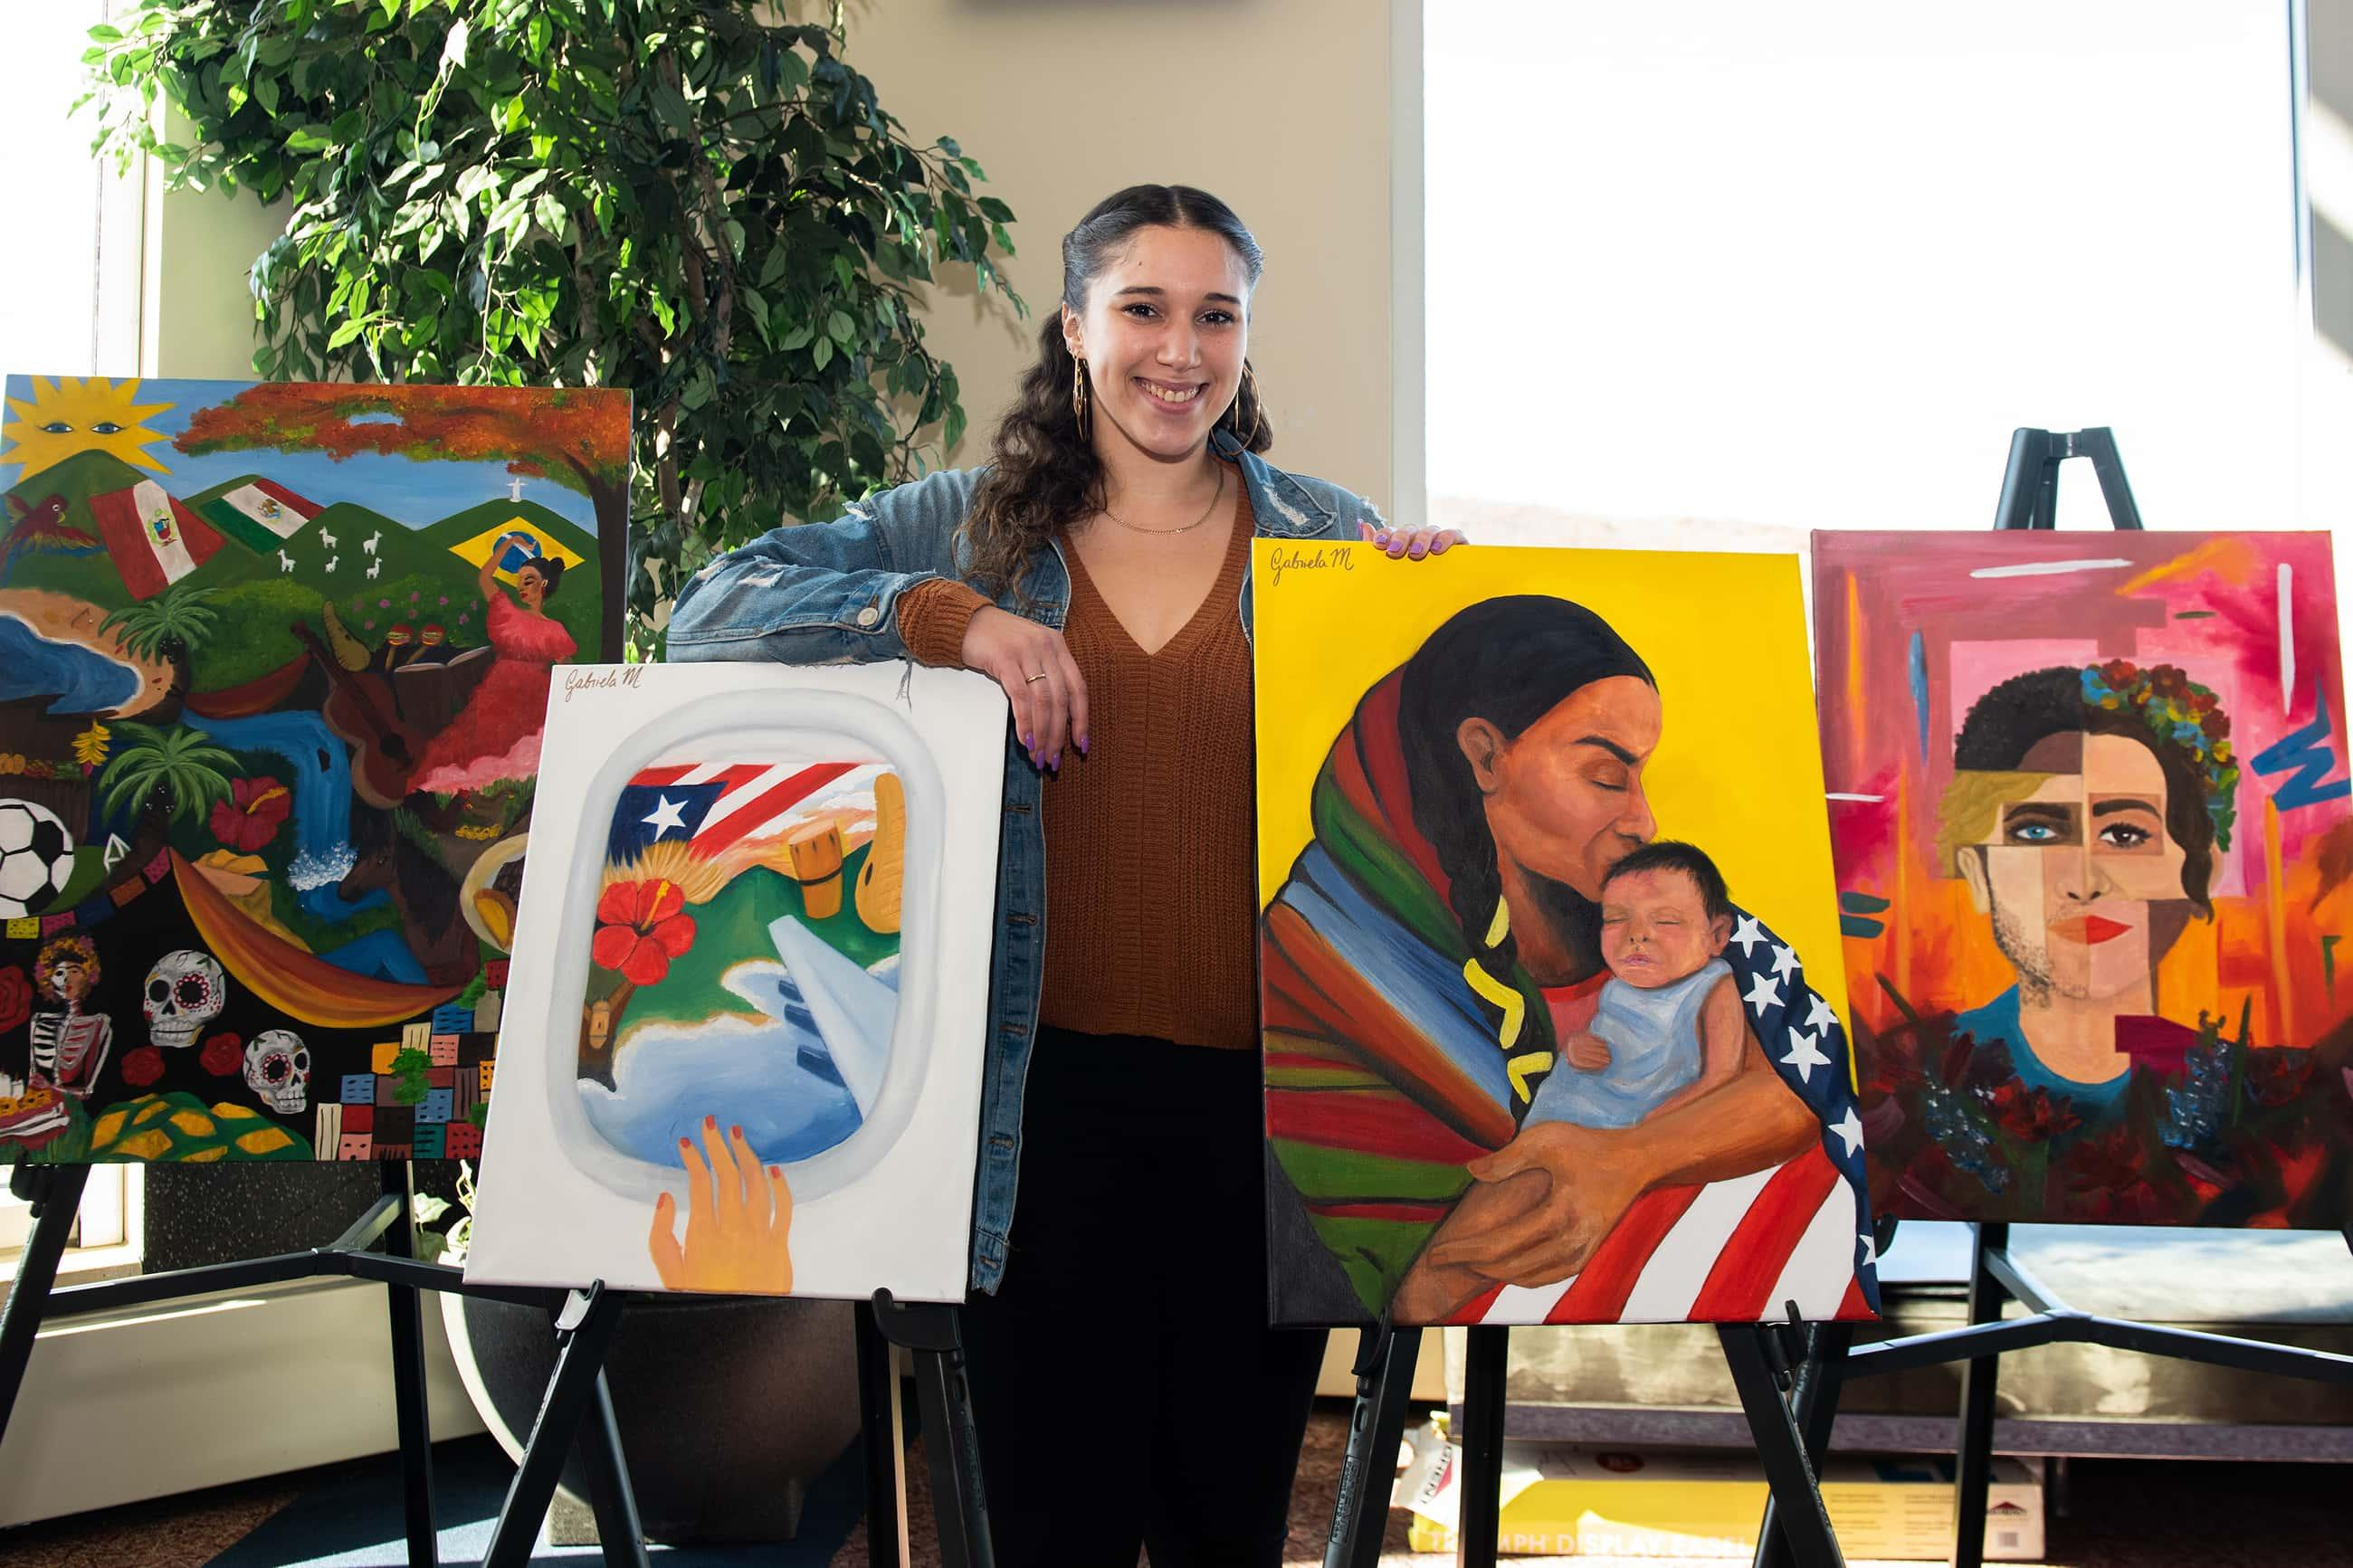 a female student displays four paintings she made